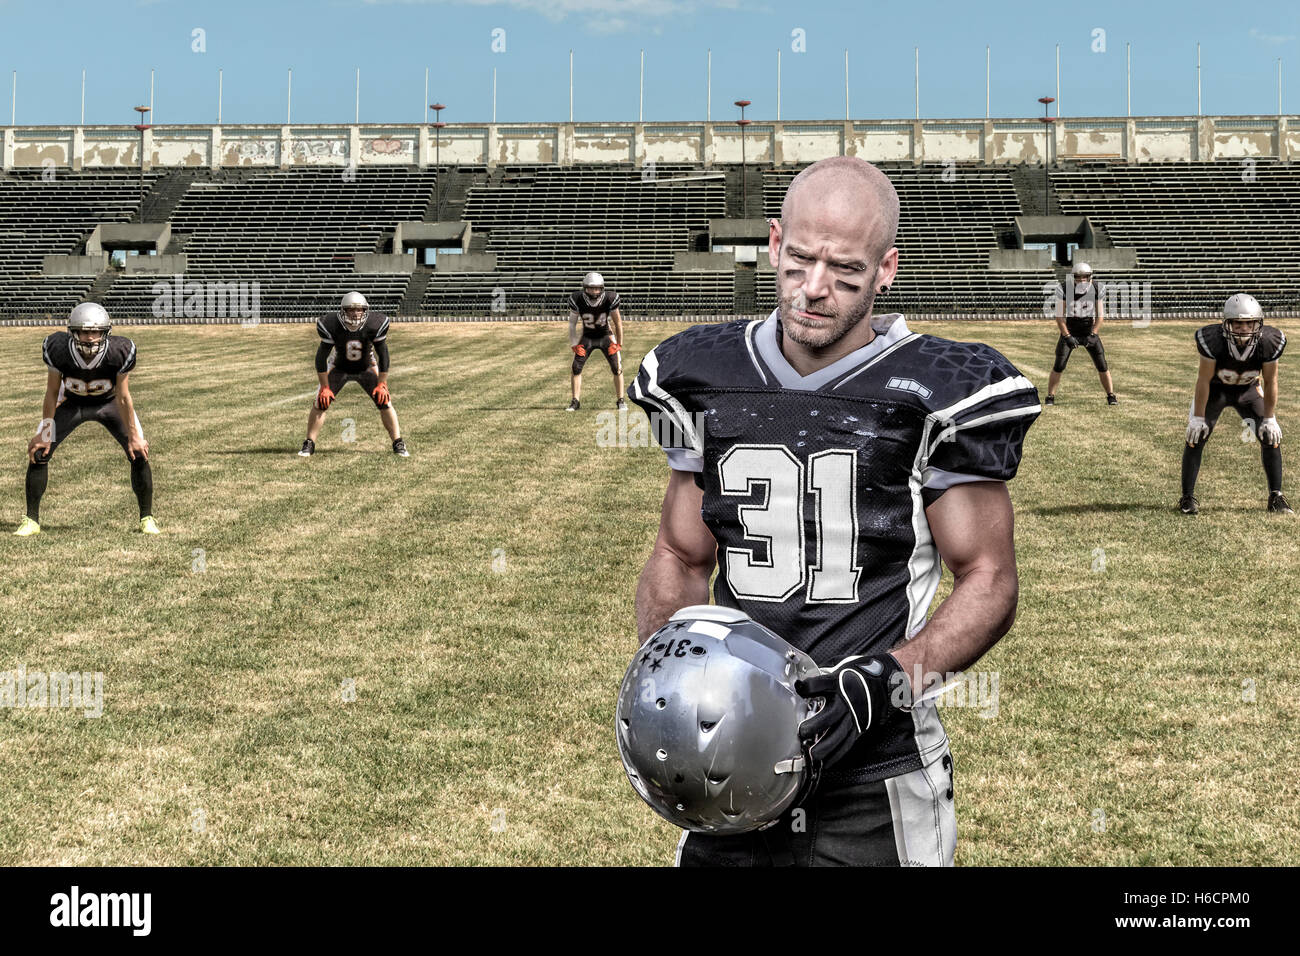 Portrait of a serious looking american football player, who stands  in a desolate stadium. - Stock Image